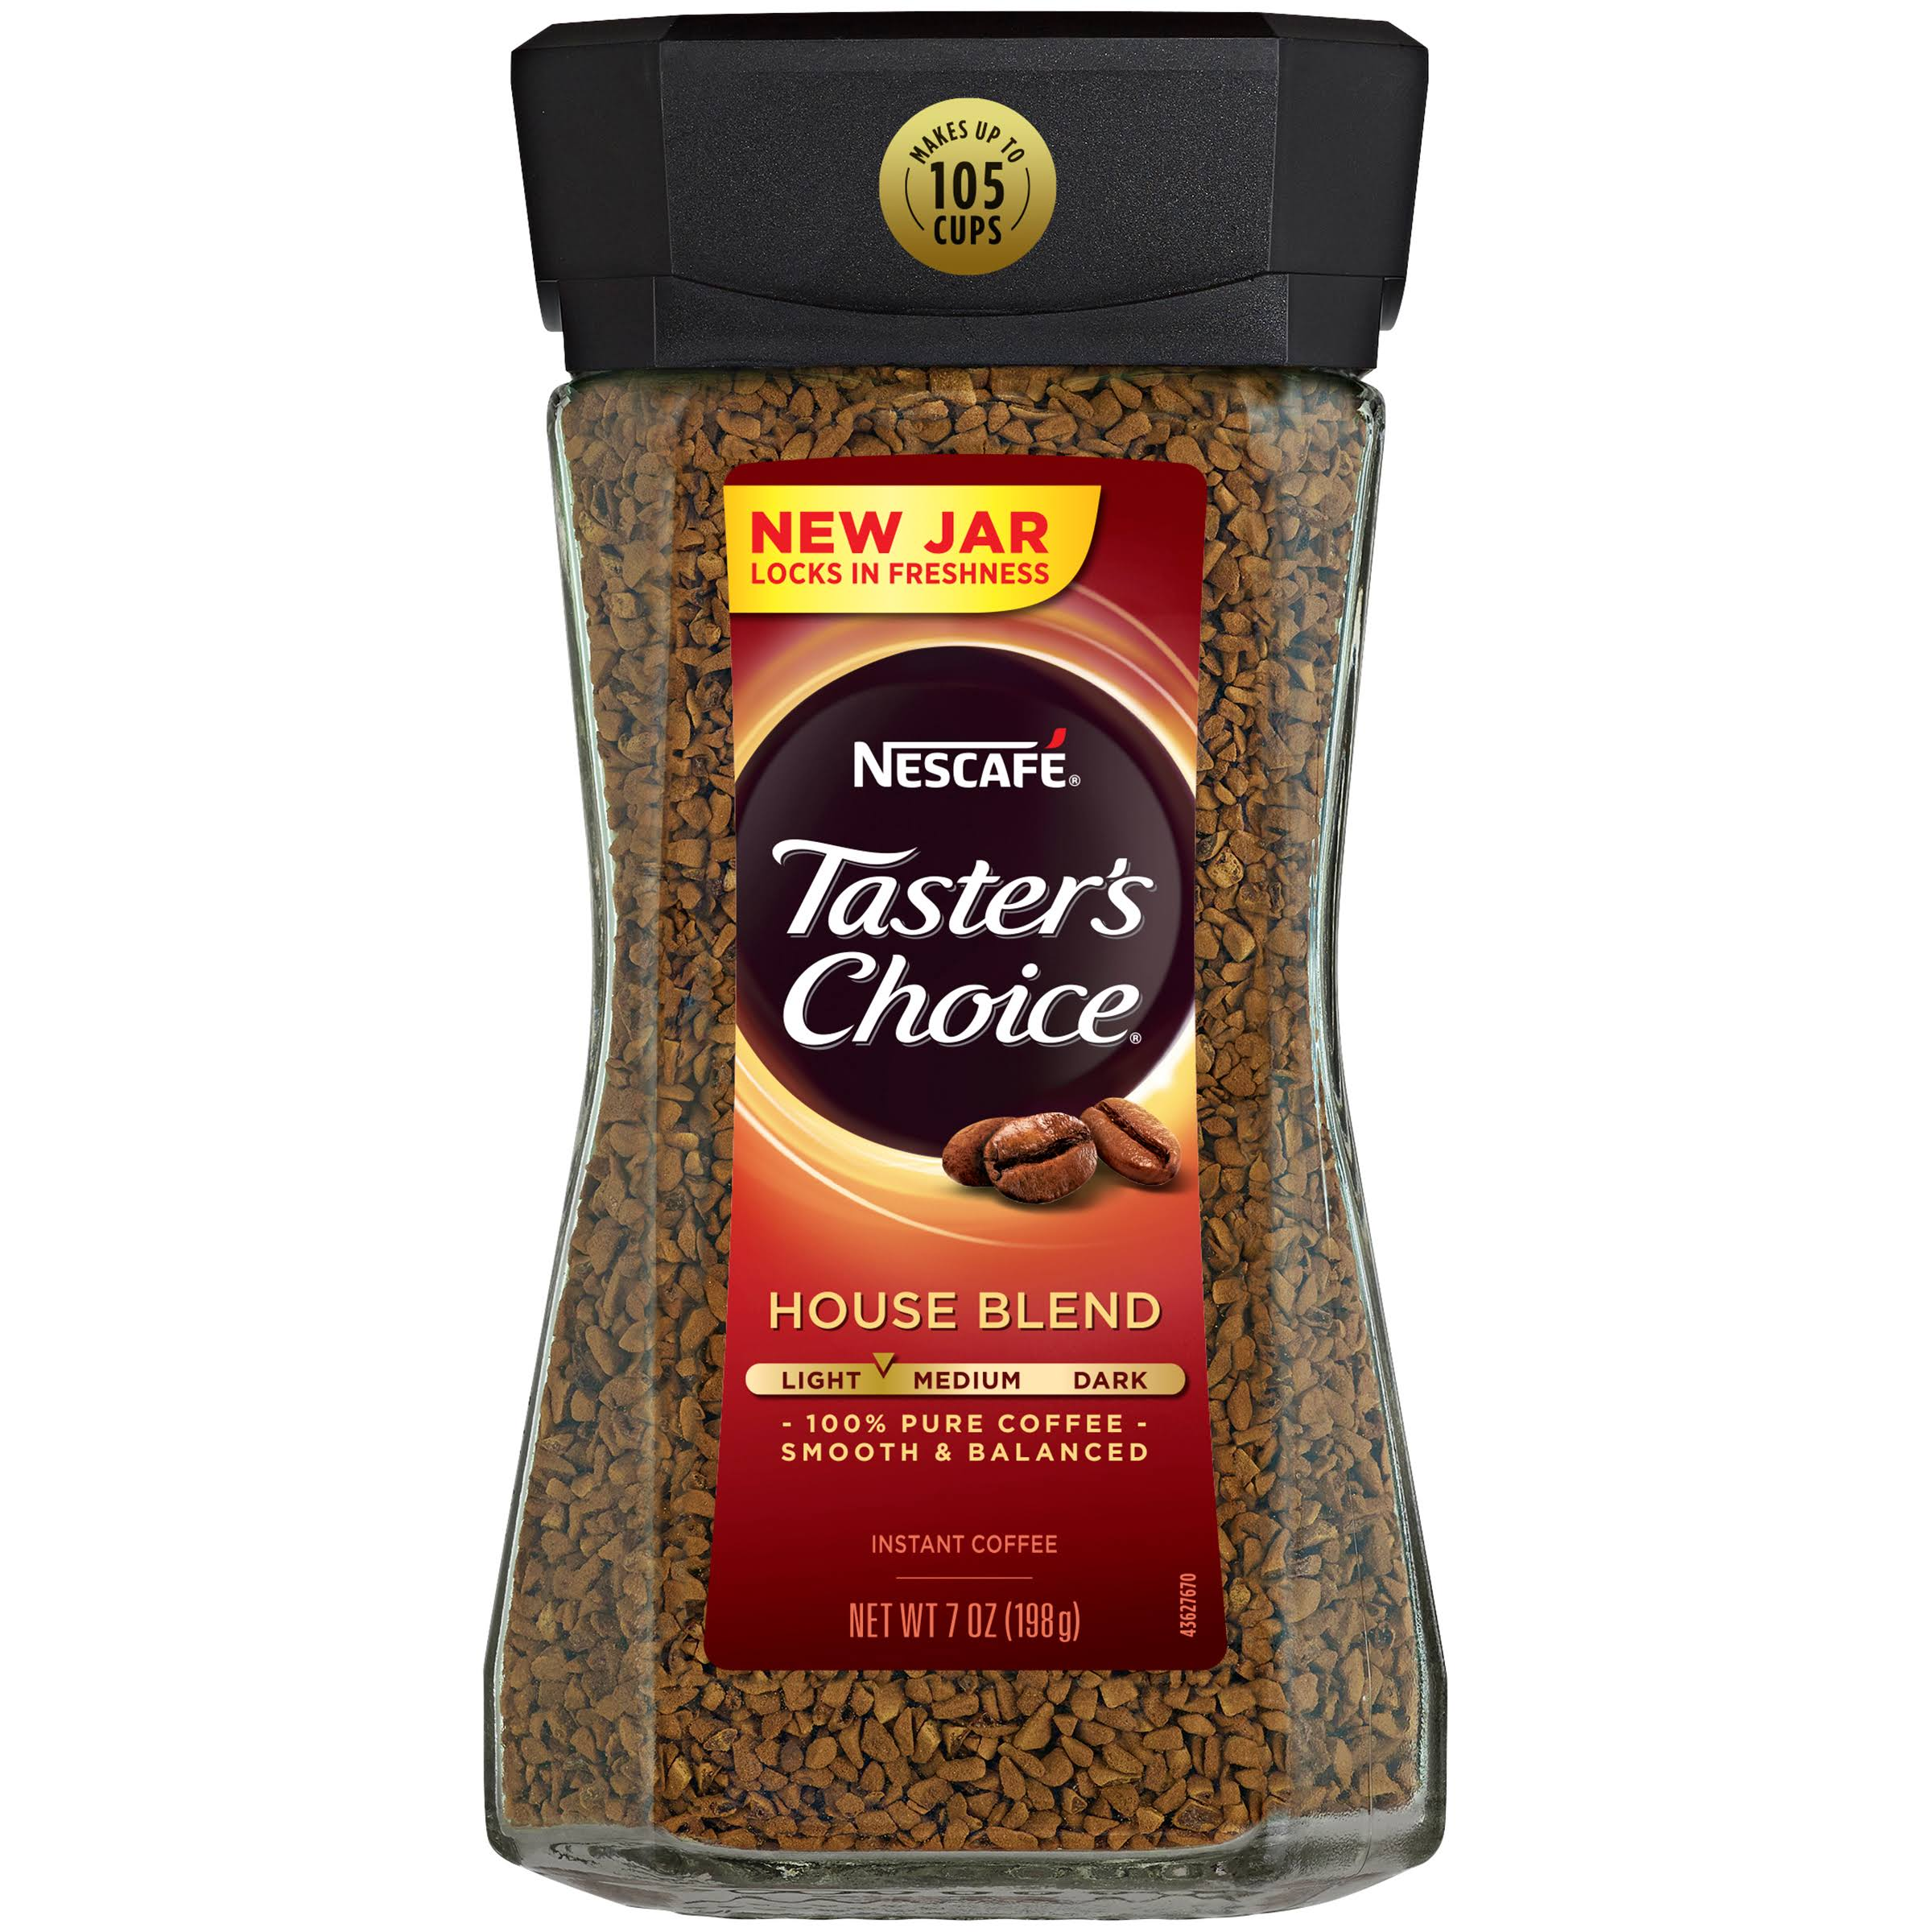 Nescafé Taster's Choice House Blend Instant Coffee - 198g